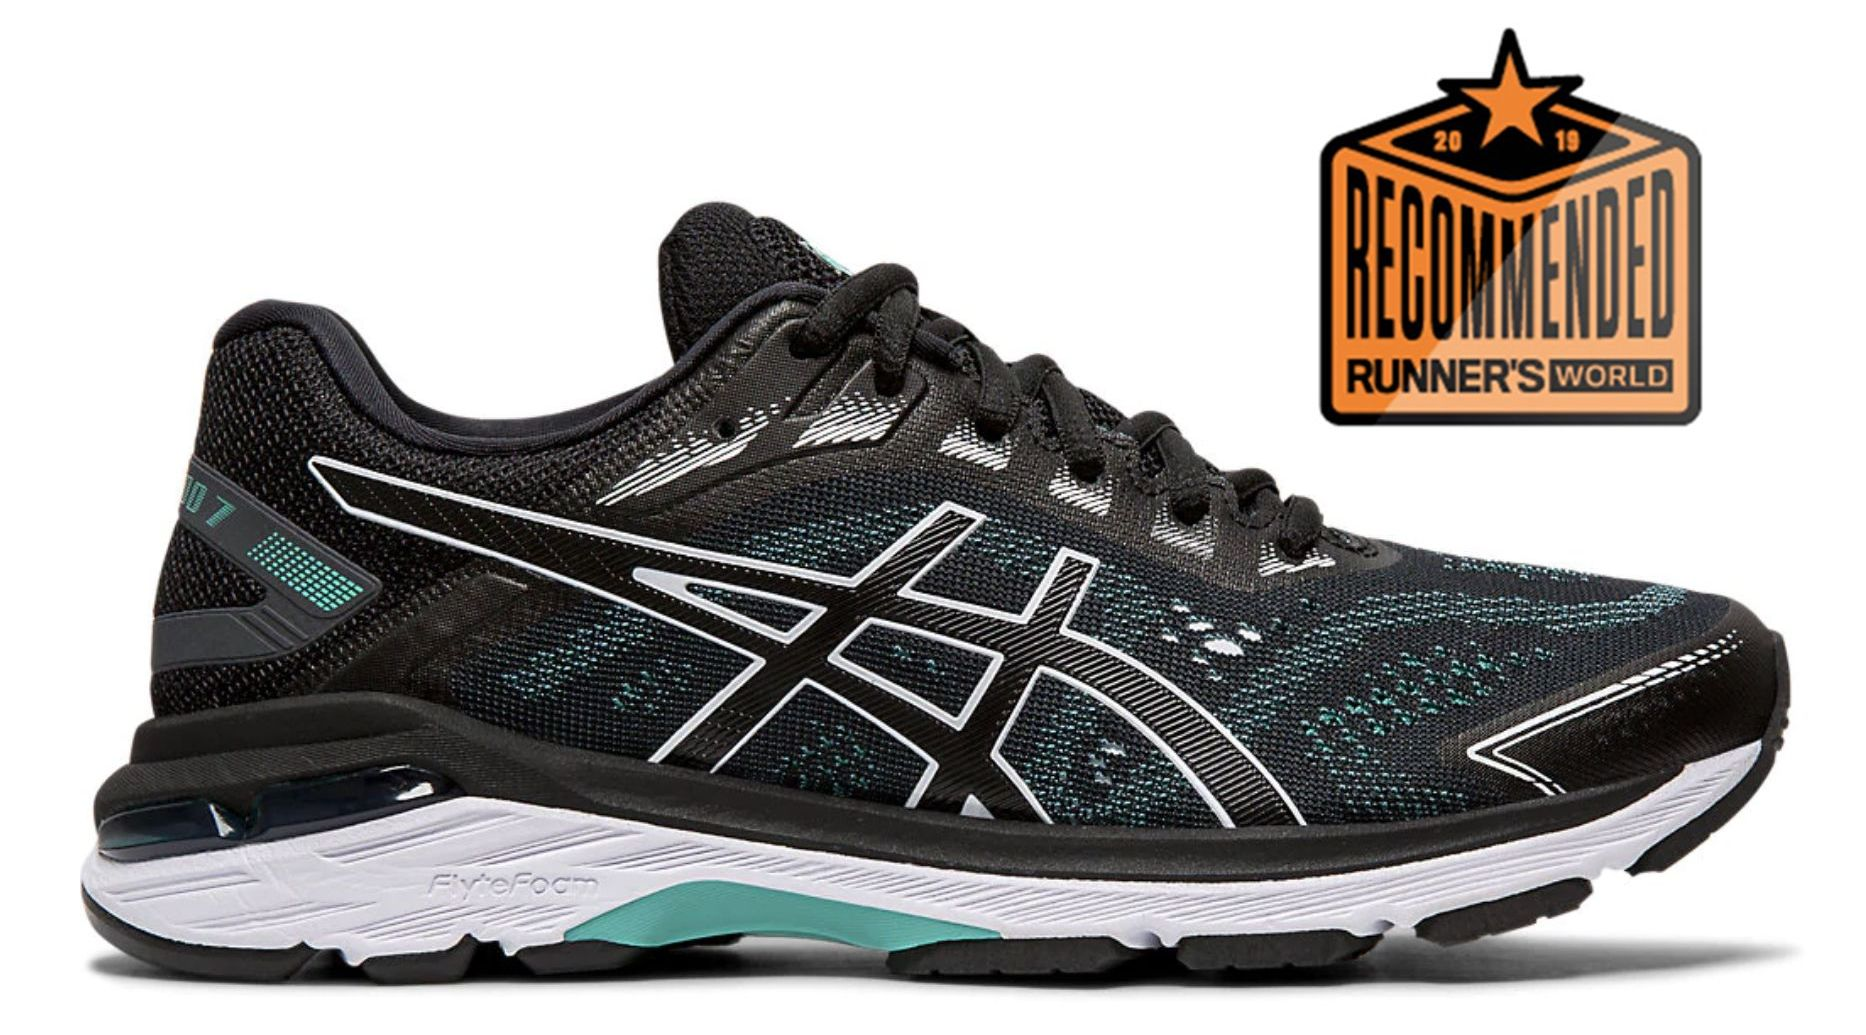 look good shoes sale special section 2018 shoes Best Running Shoes | Running Shoe Reviews 2019